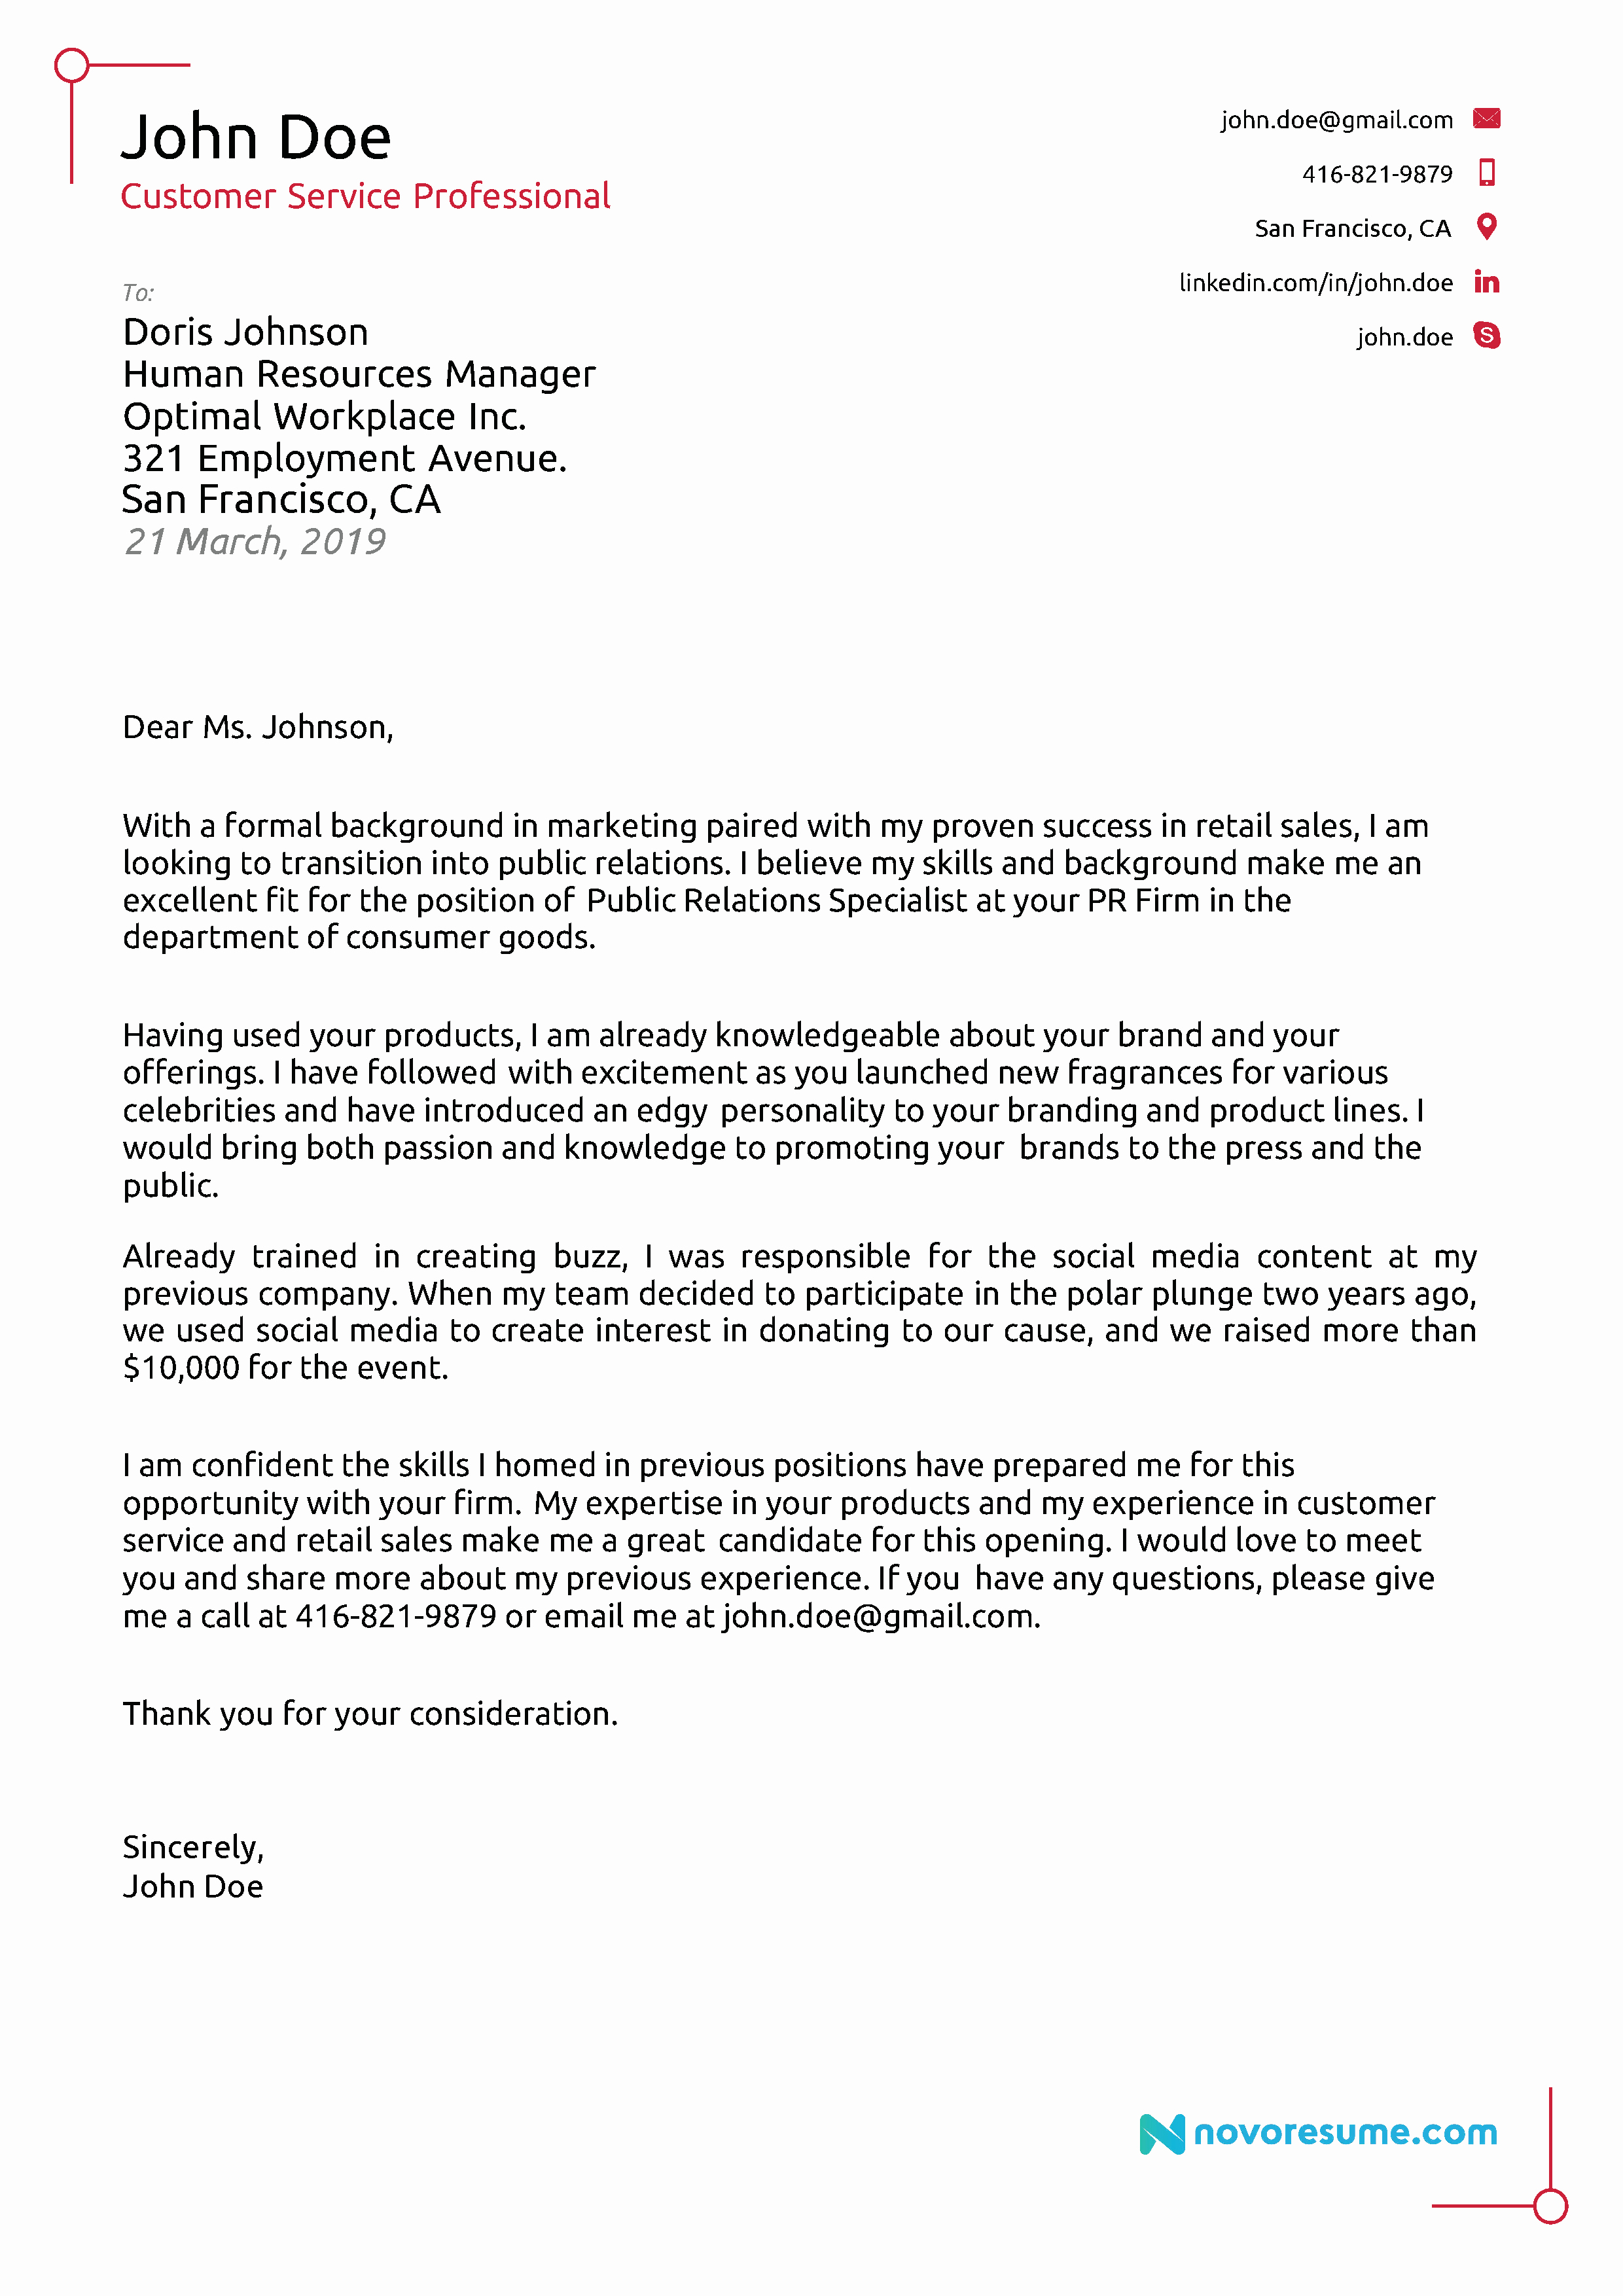 Sample Professional Cover Letter Beautiful Cover Letter Examples for 2019 [ Writing Tips]